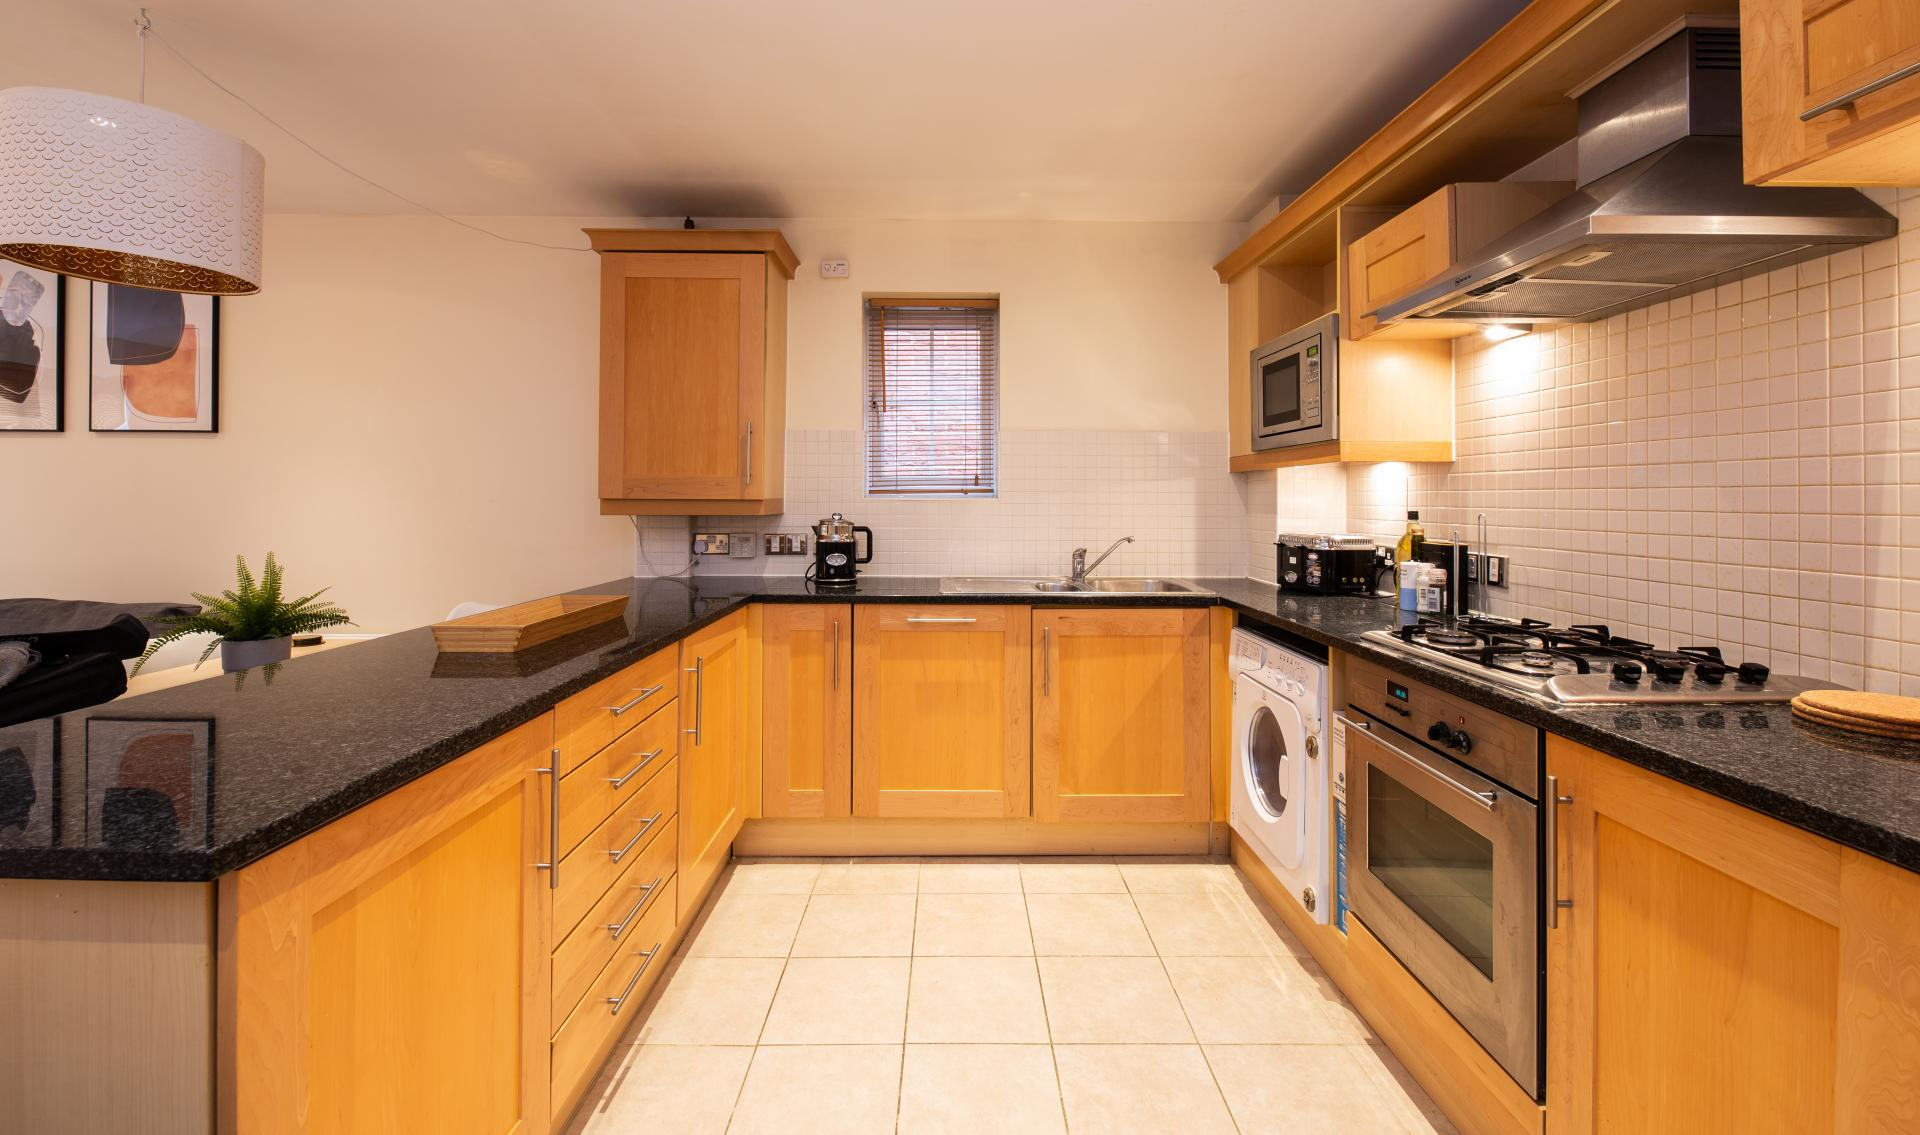 Fully Equipped Kitchen at Guildown Court Apartment, Centre, Guildford - Citybase Apartments